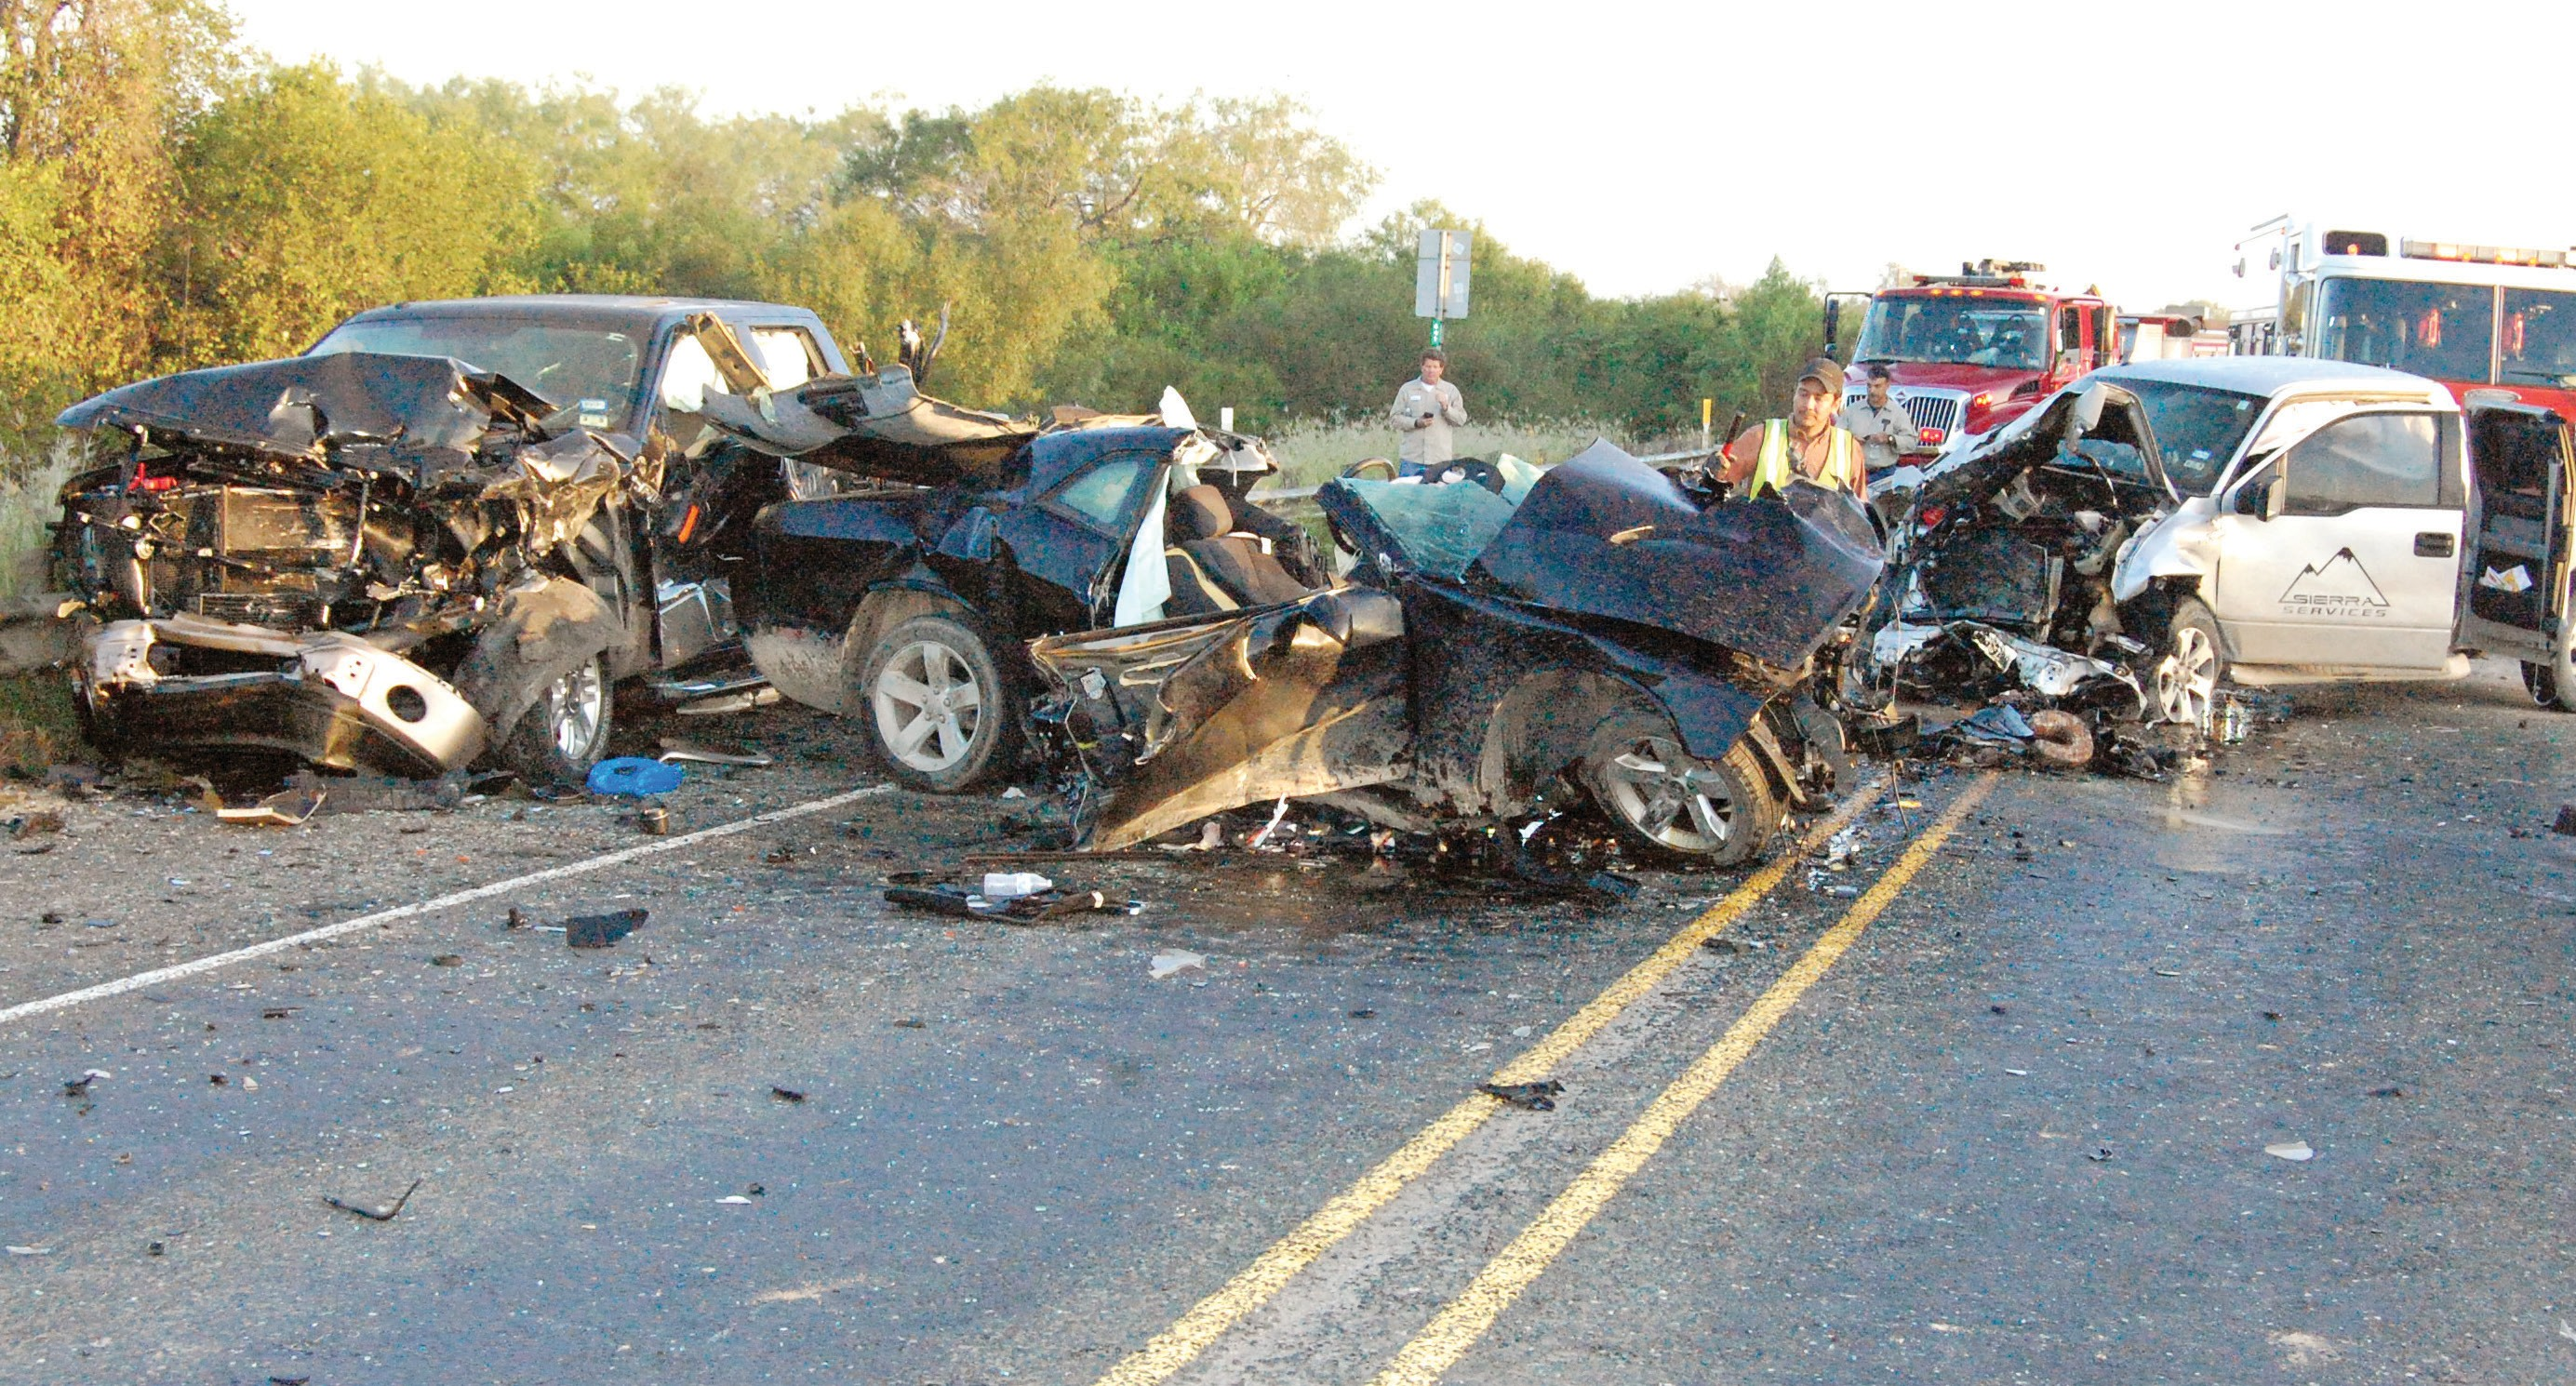 On Sunday, October 5, State Hwy. 16, about four miles south of Jourdanton, was closed down for several hours after a three vehicle crash claimed two lives and sent three more to the hospital.